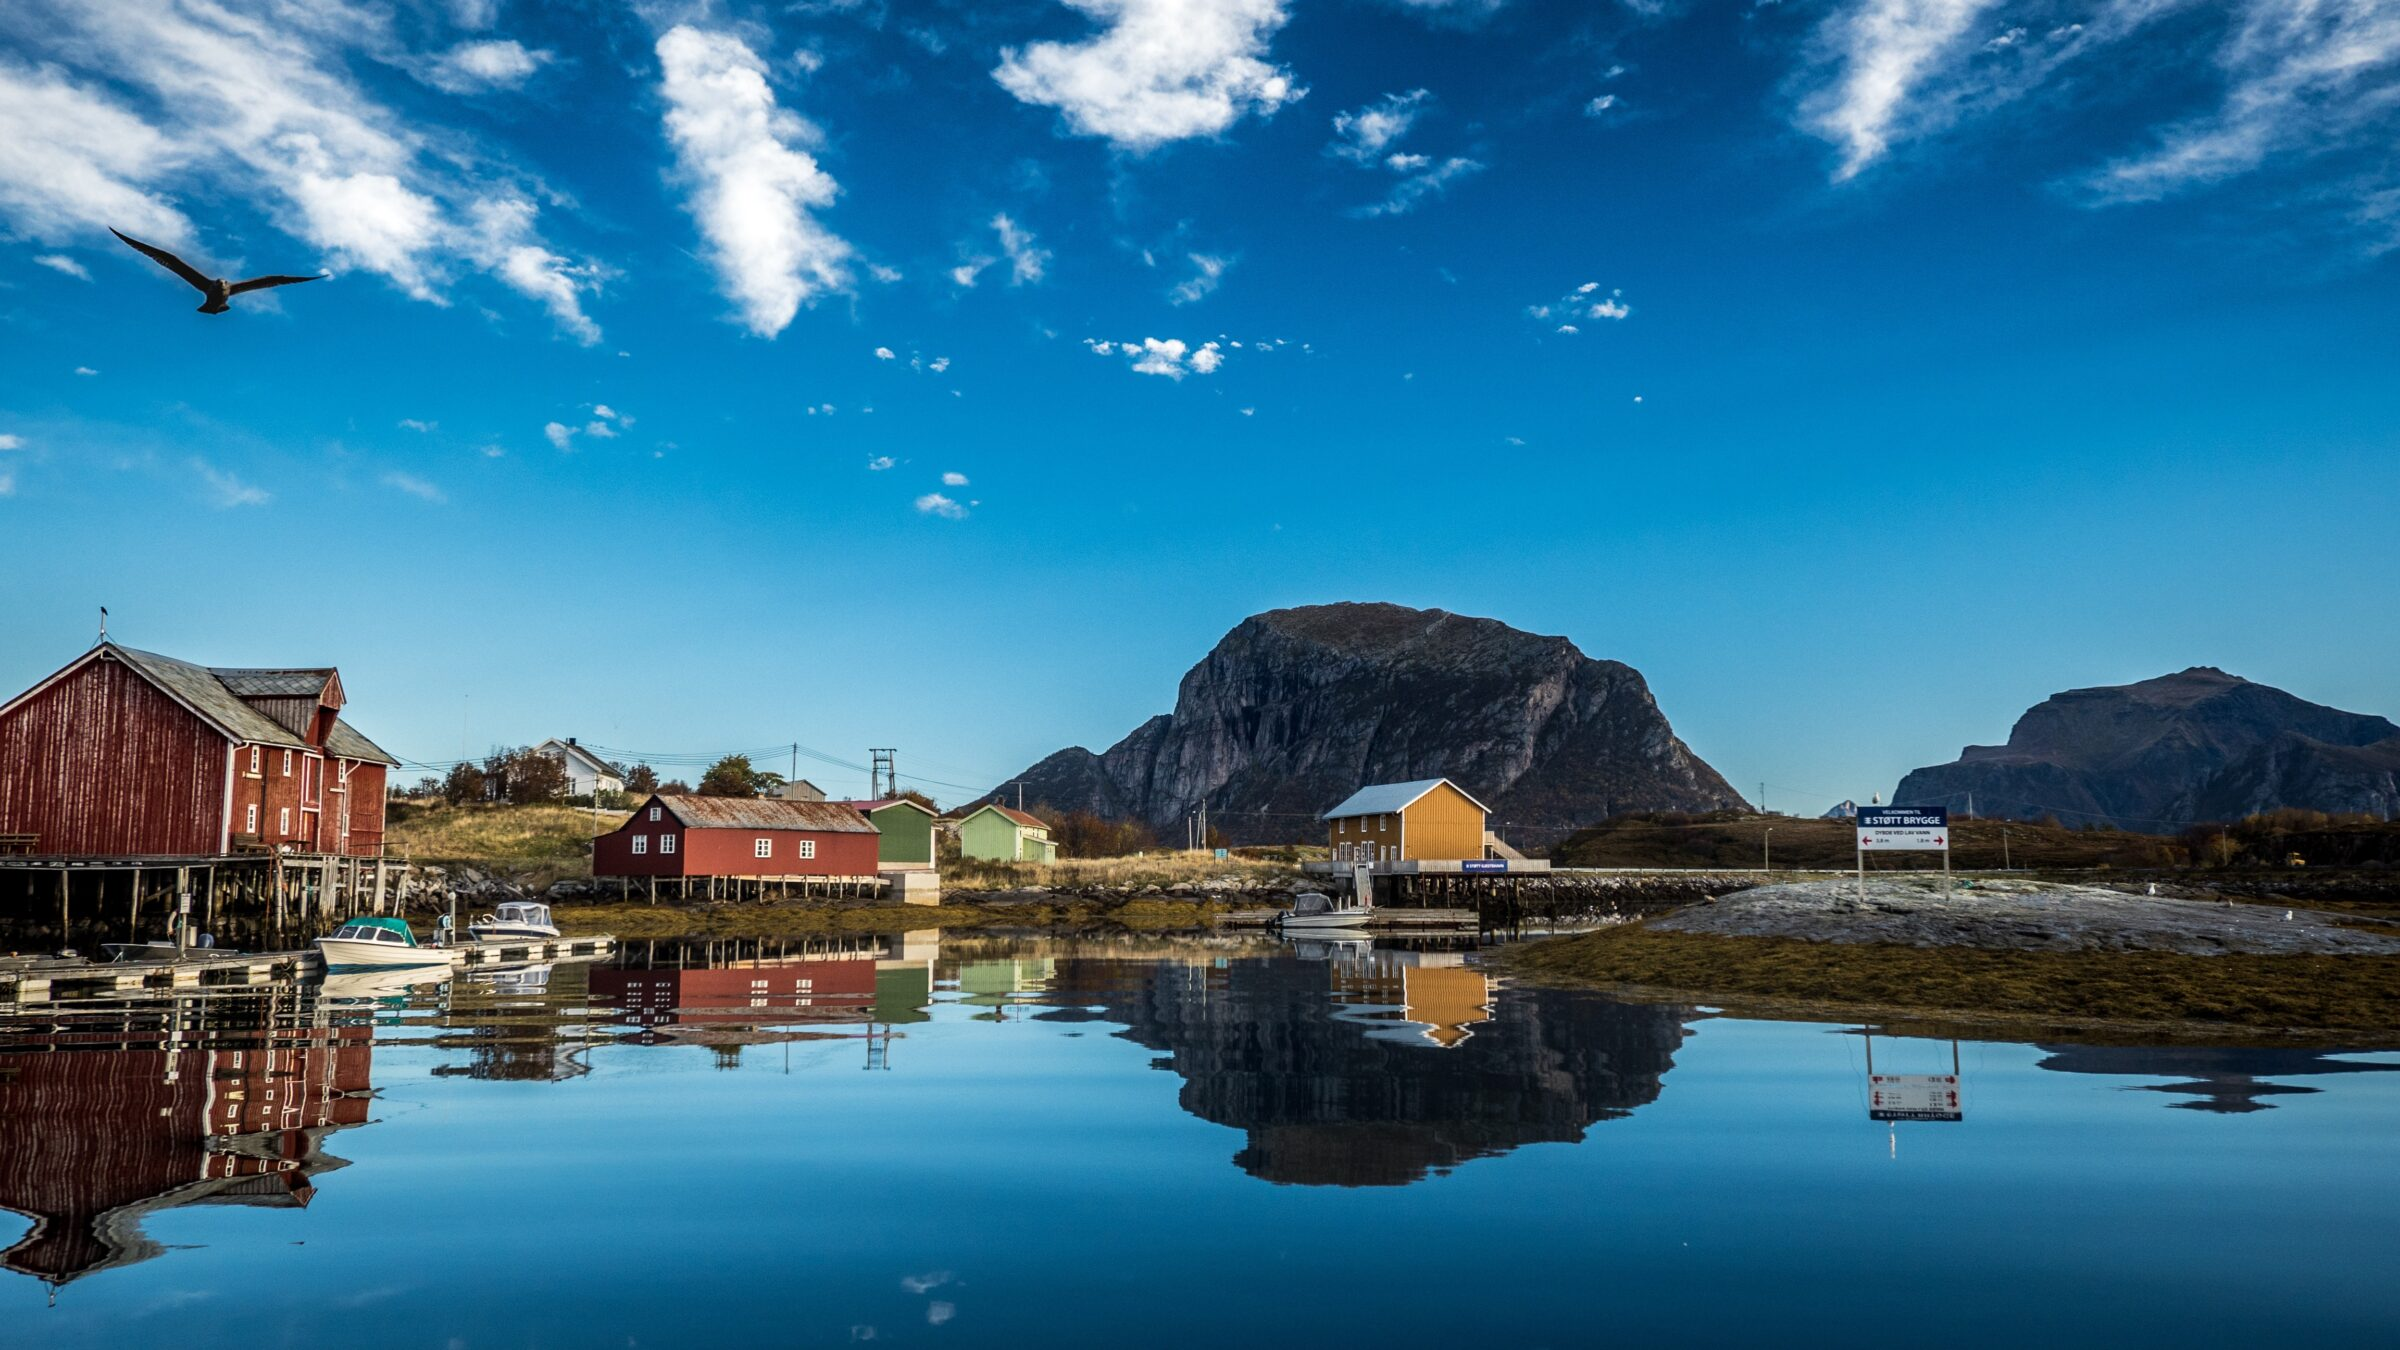 Image from Northern Norway with sea, mountains and red and yellow houses